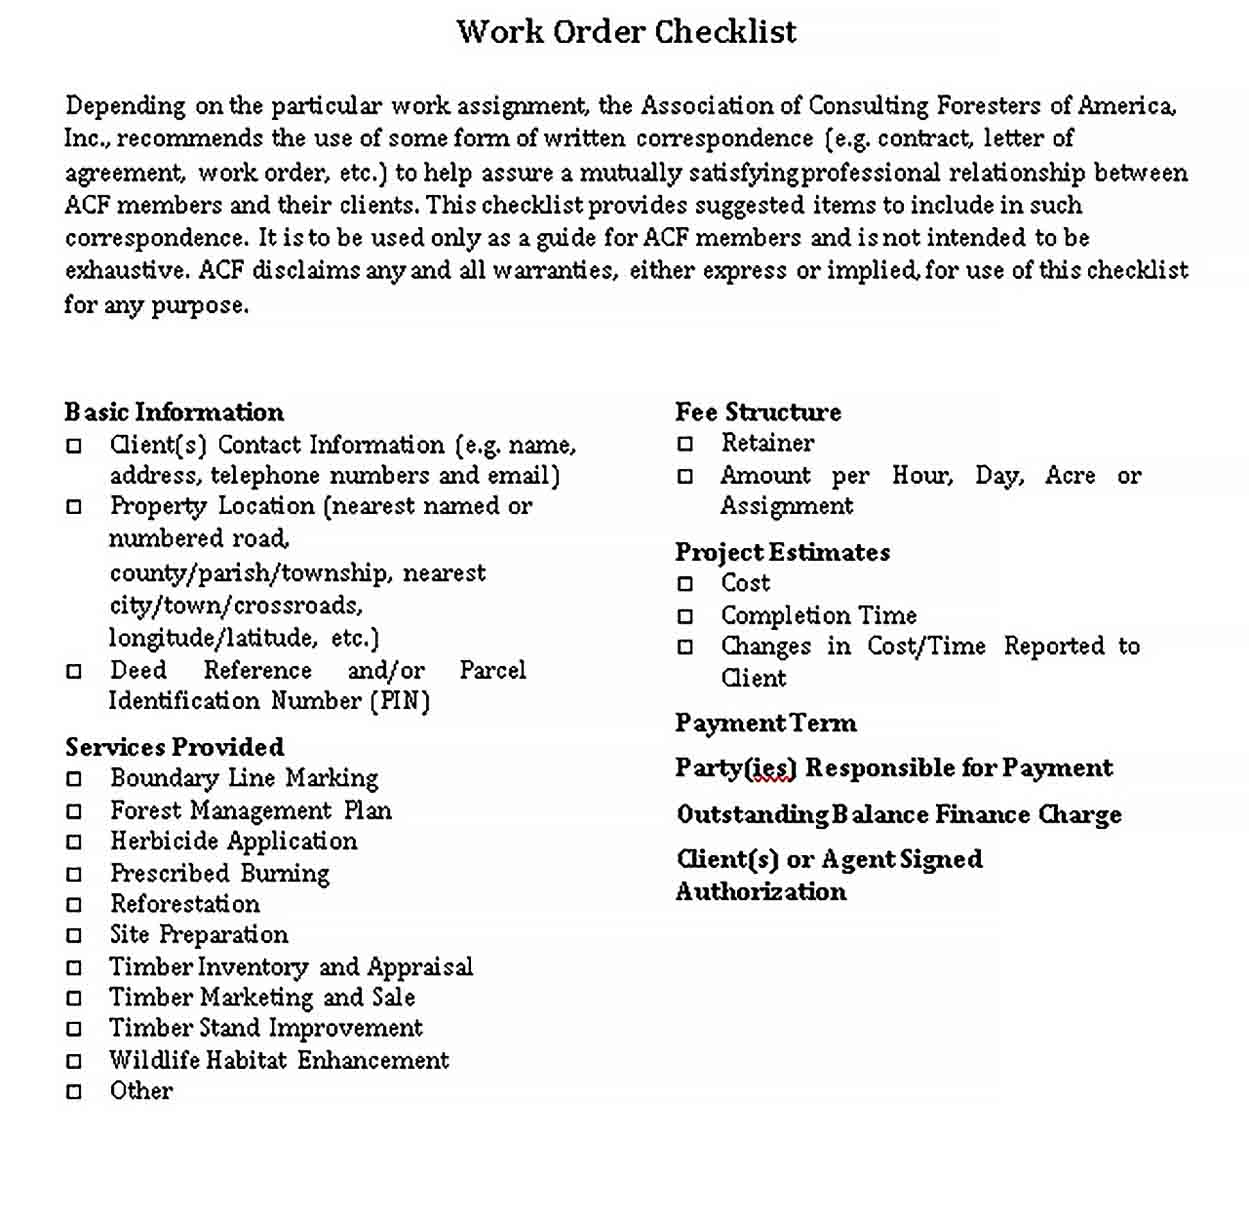 Template Checklist of Work Order